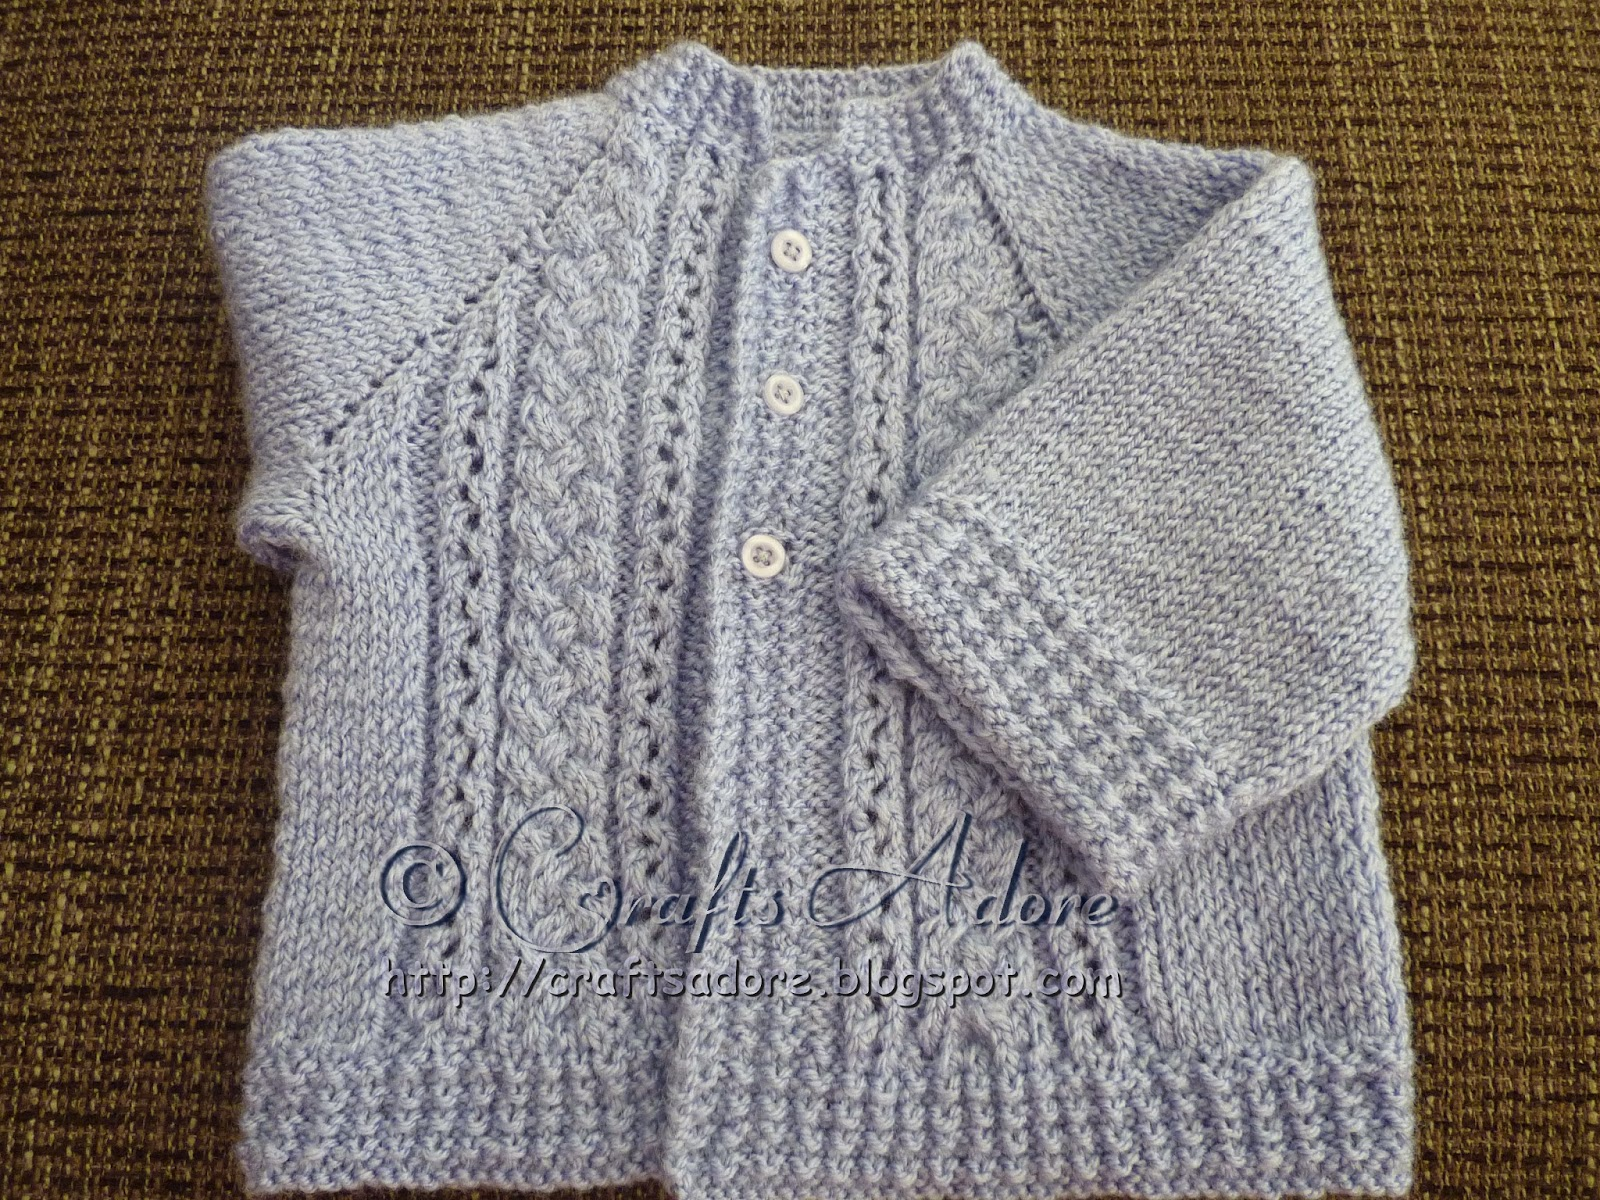 Craftsadore Handsome Cables Knitted Baby Boy Cardigan Free